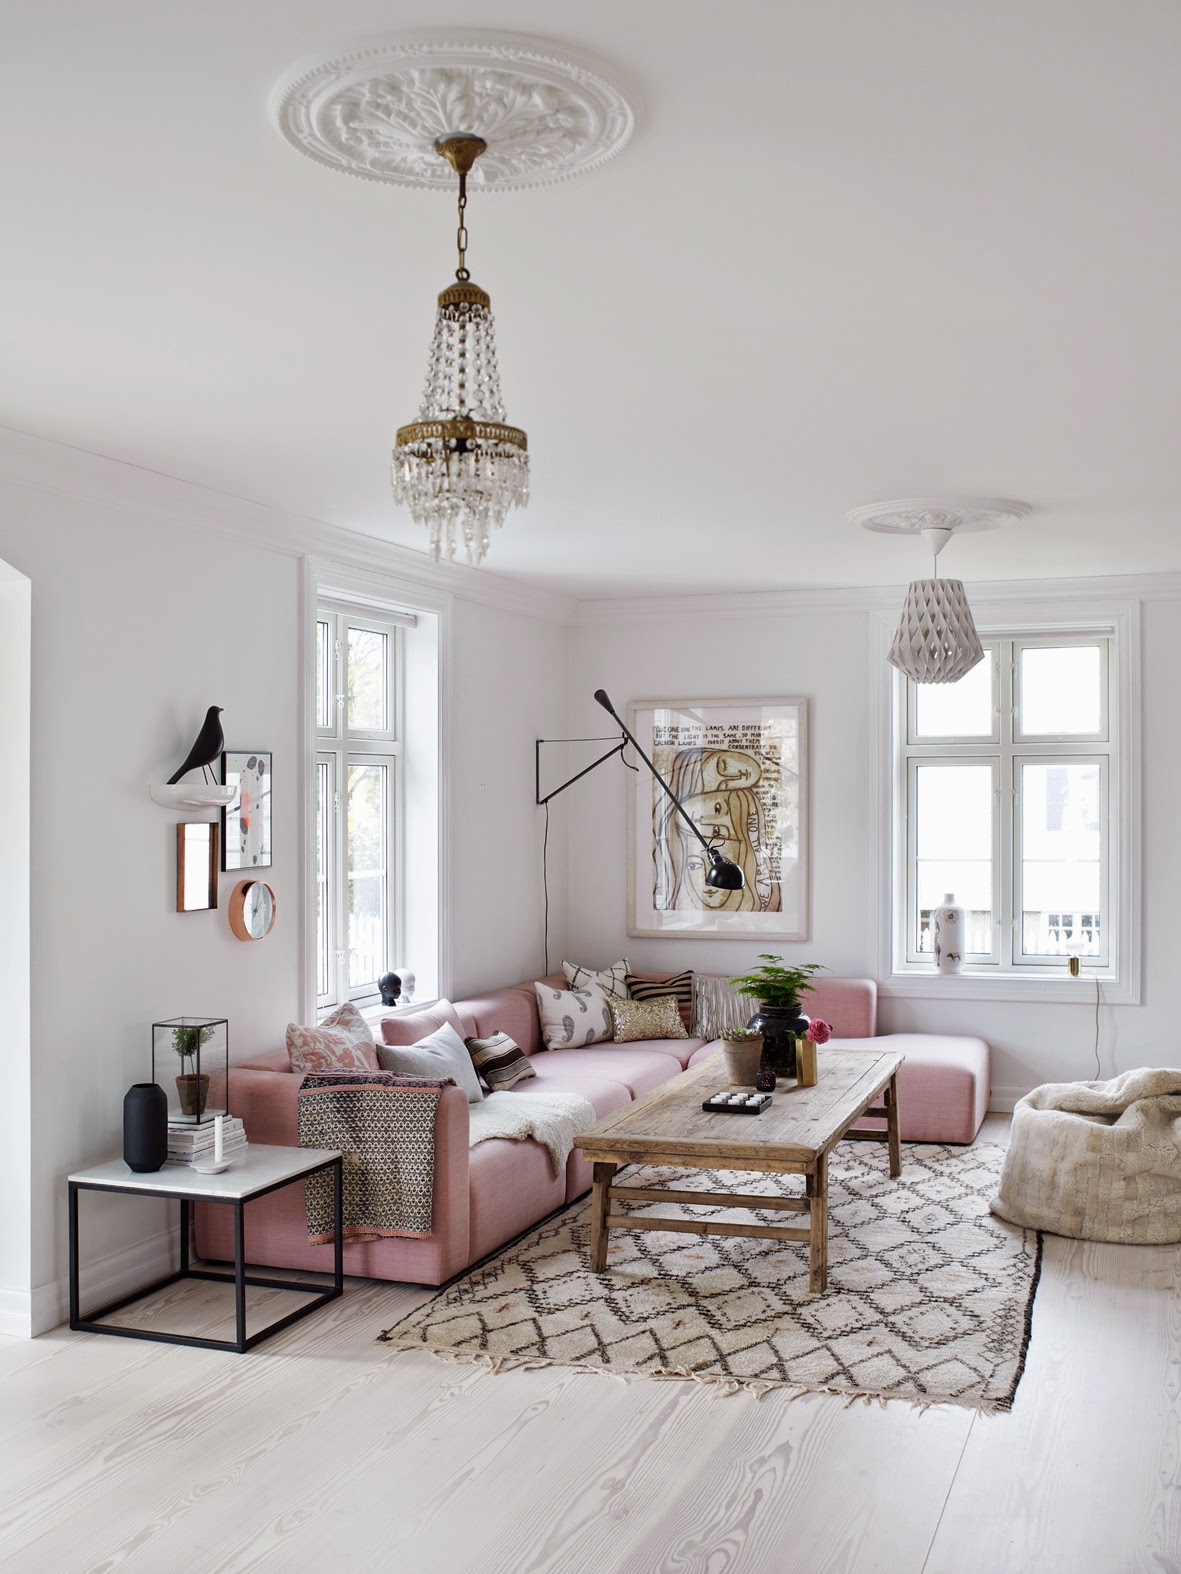 Lovely living room with rose quartz accents - Daily Dream ... on Living Room:5J0Grrq-Soy= Curtains Design  id=41090